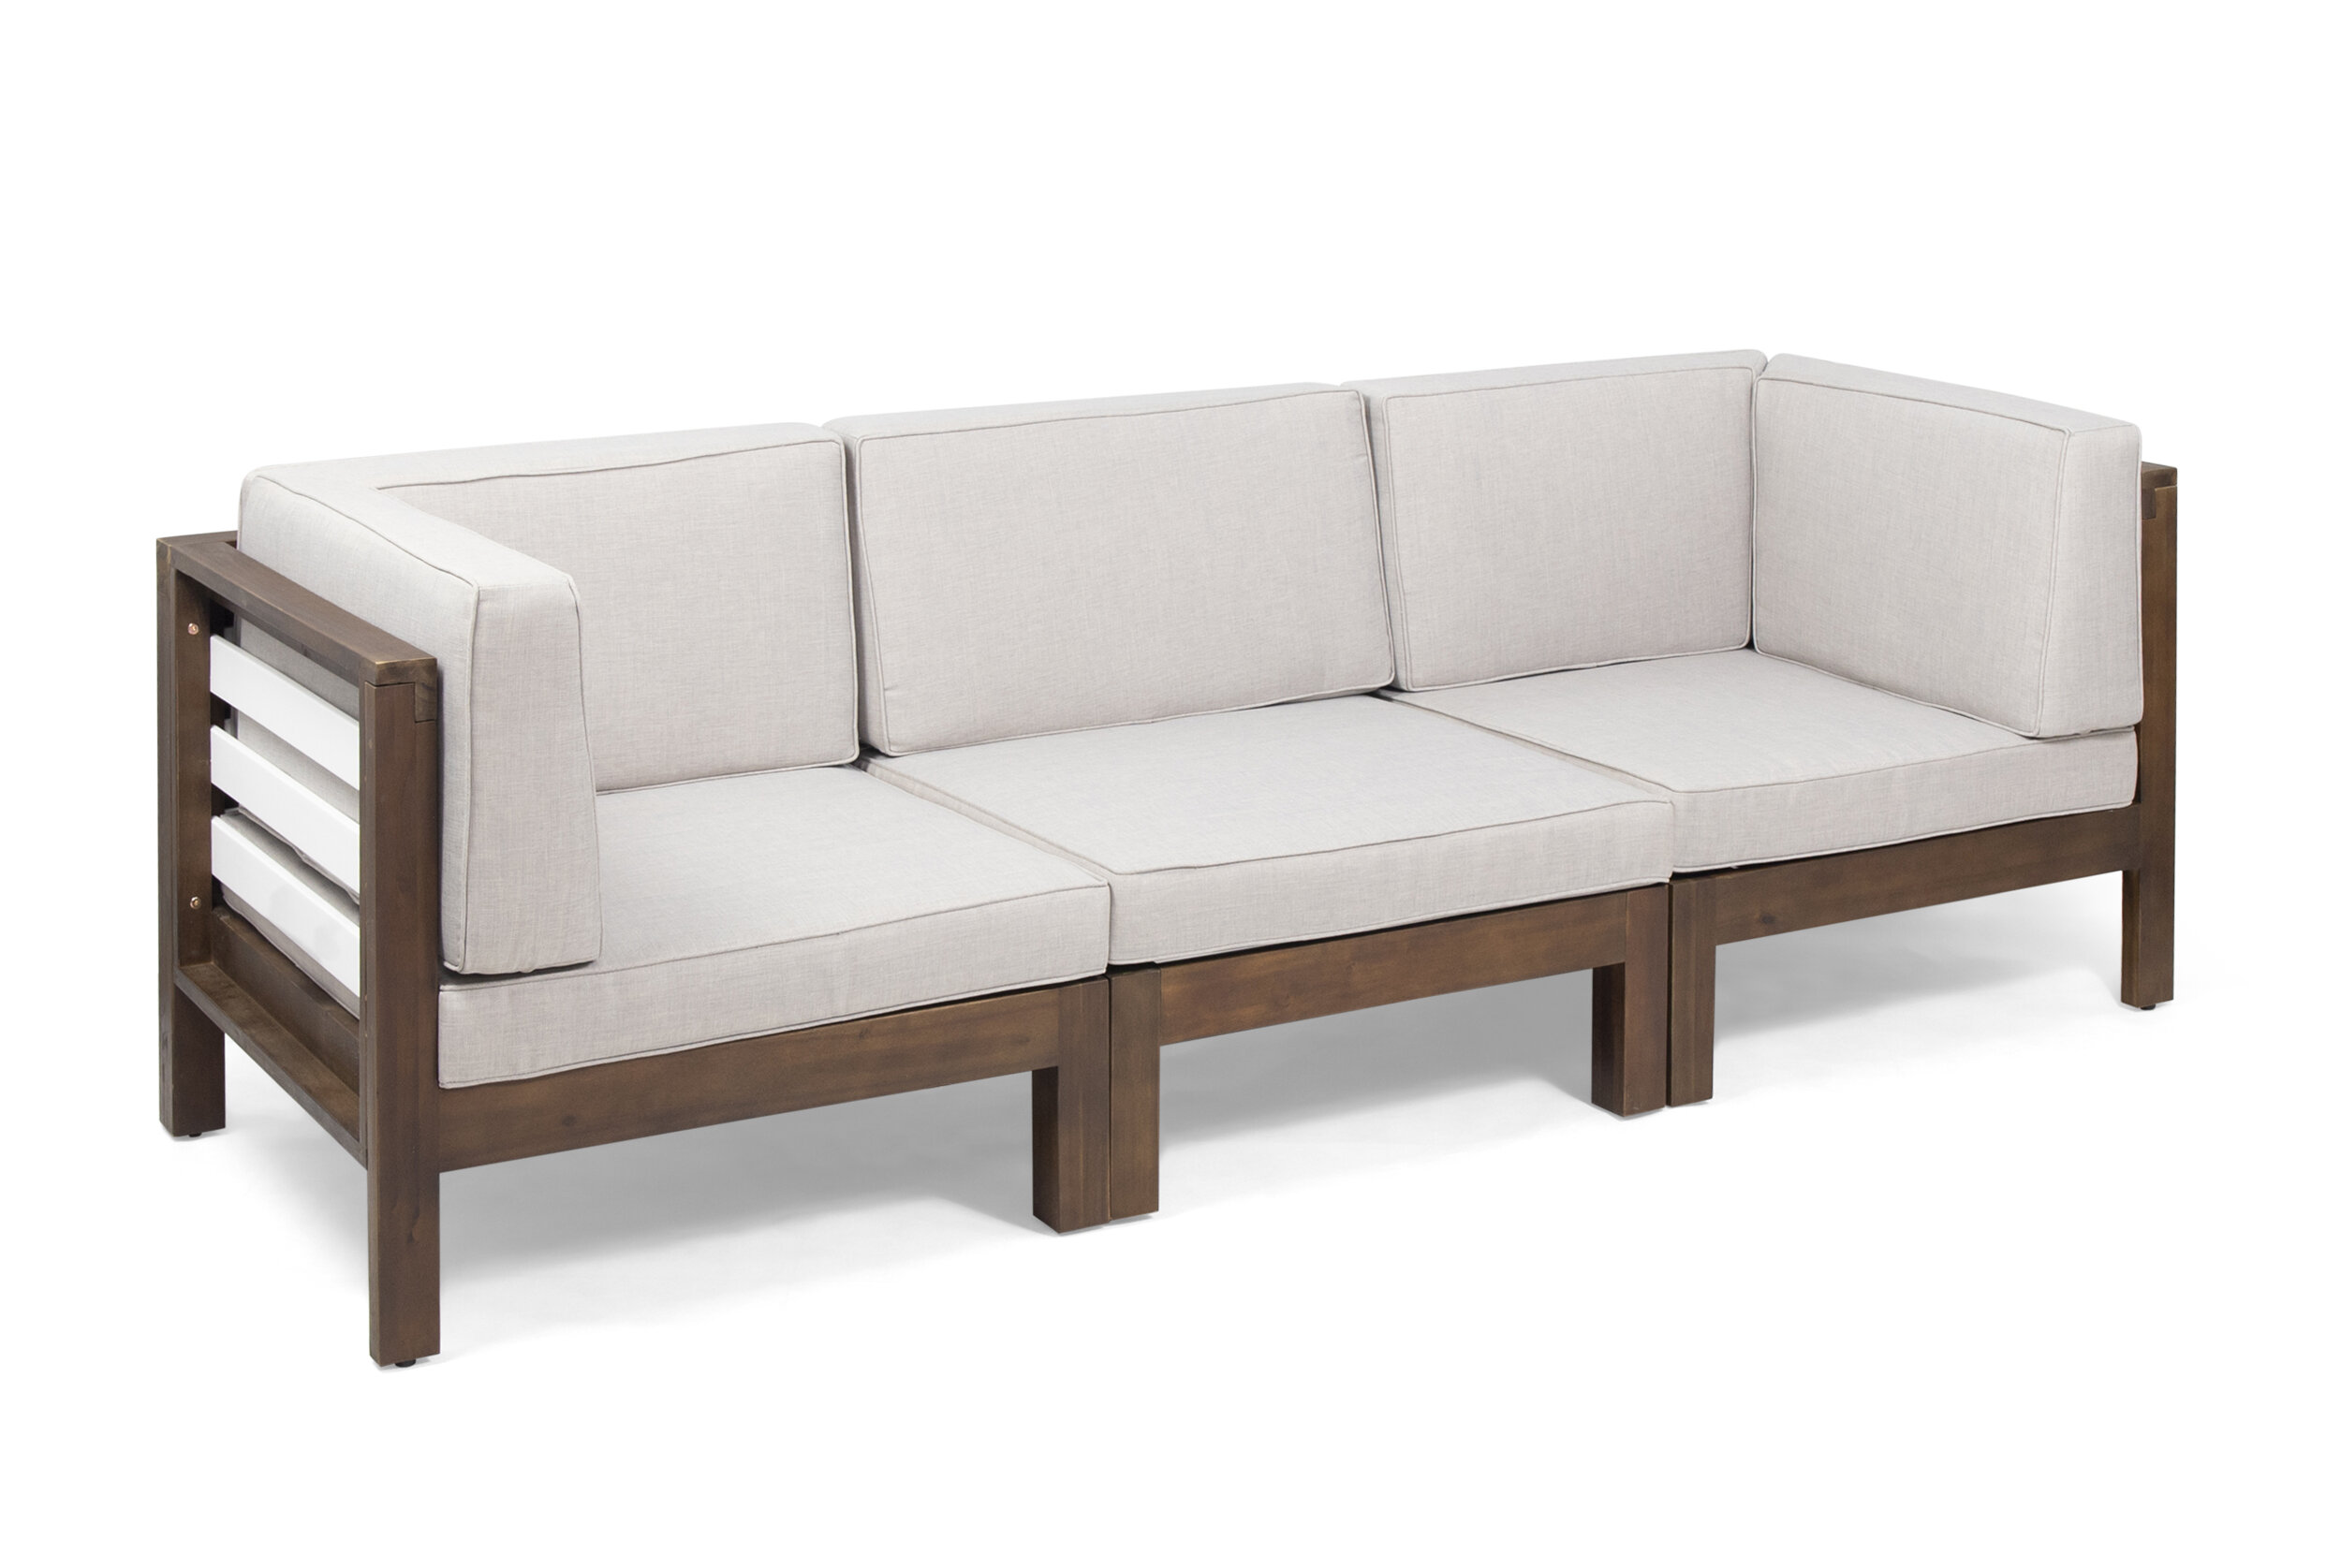 Parnell Outdoor Modular Patio Sofa with Cushions